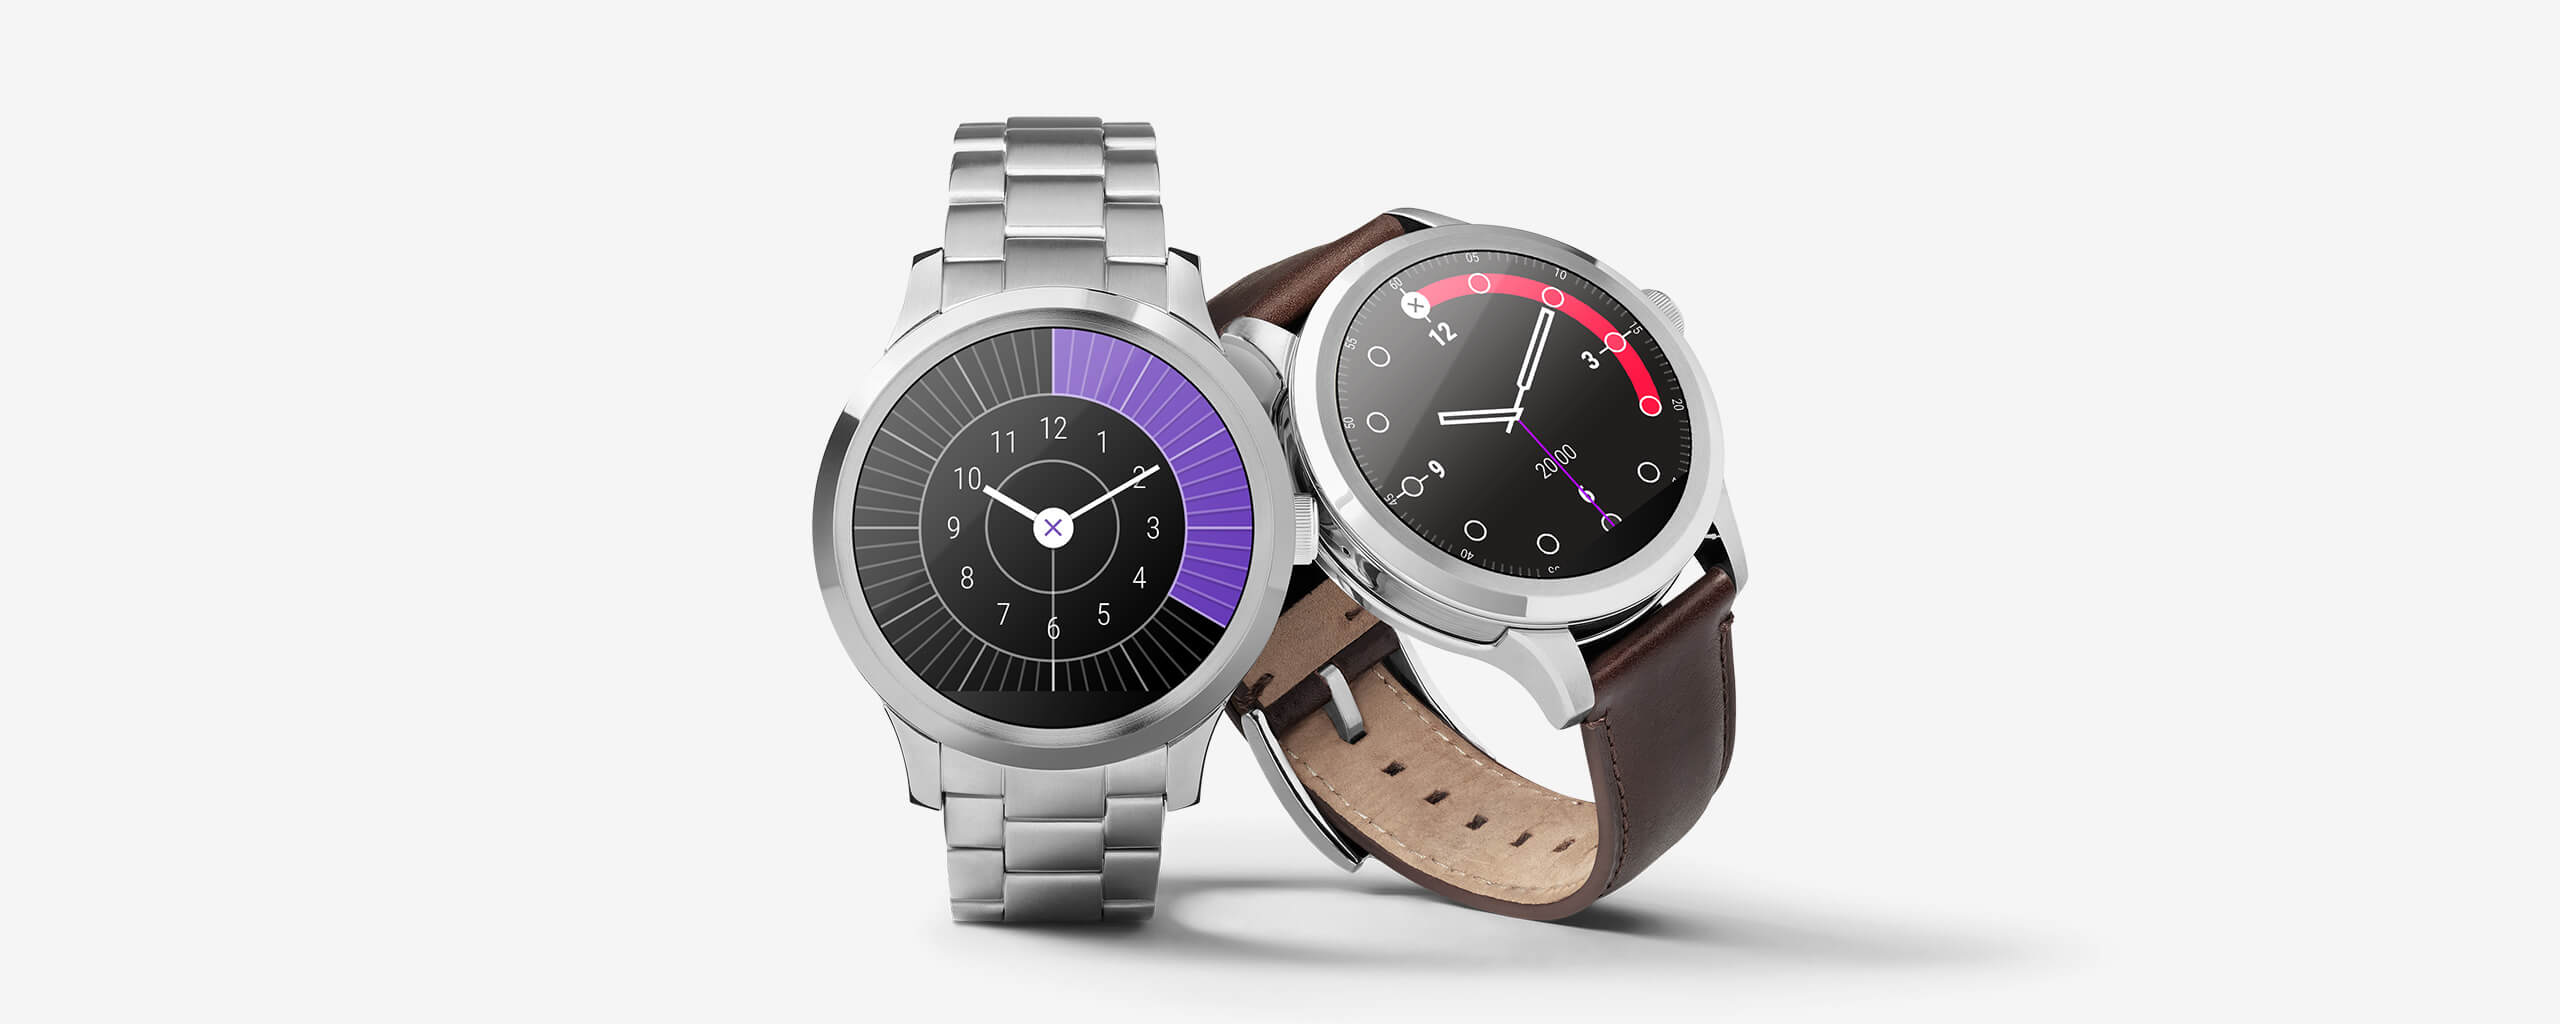 03_ustwo_timer_watch_faces